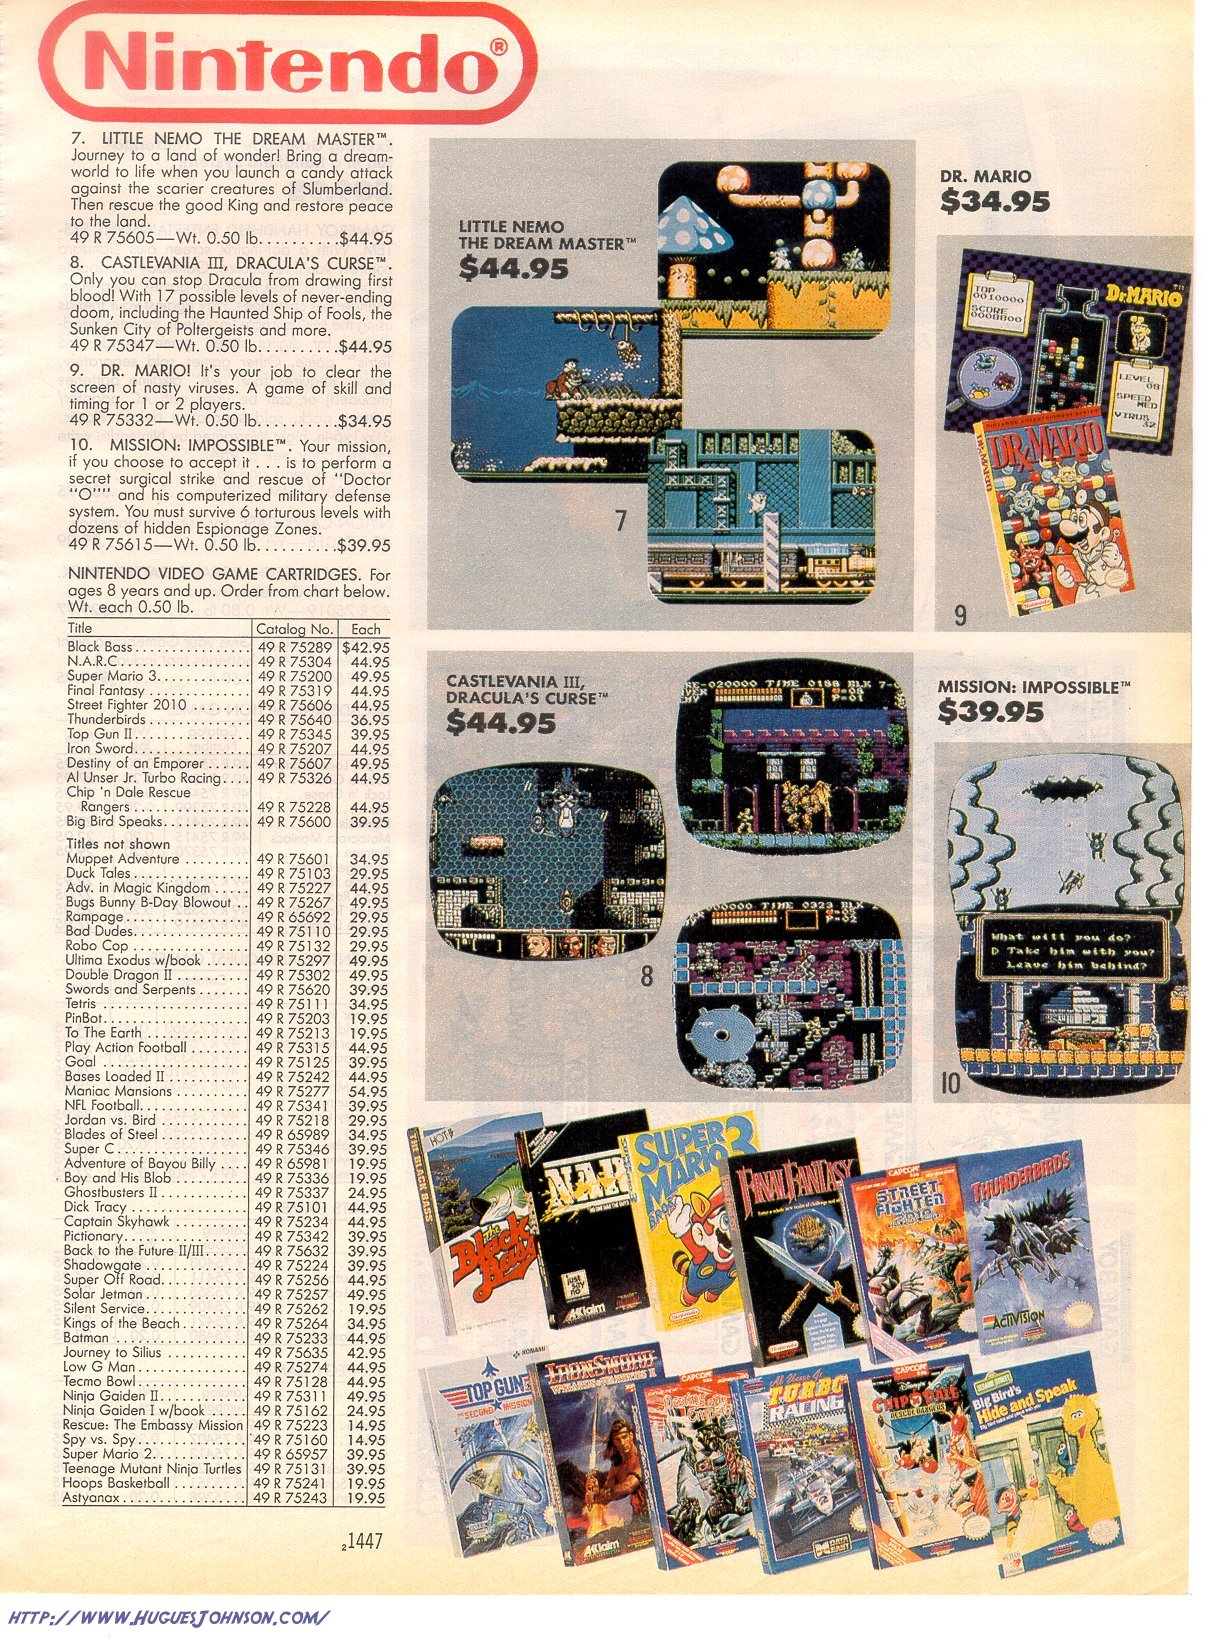 NA » Old Video Game Ads from Sears Christmas Catalogs/Wish Books